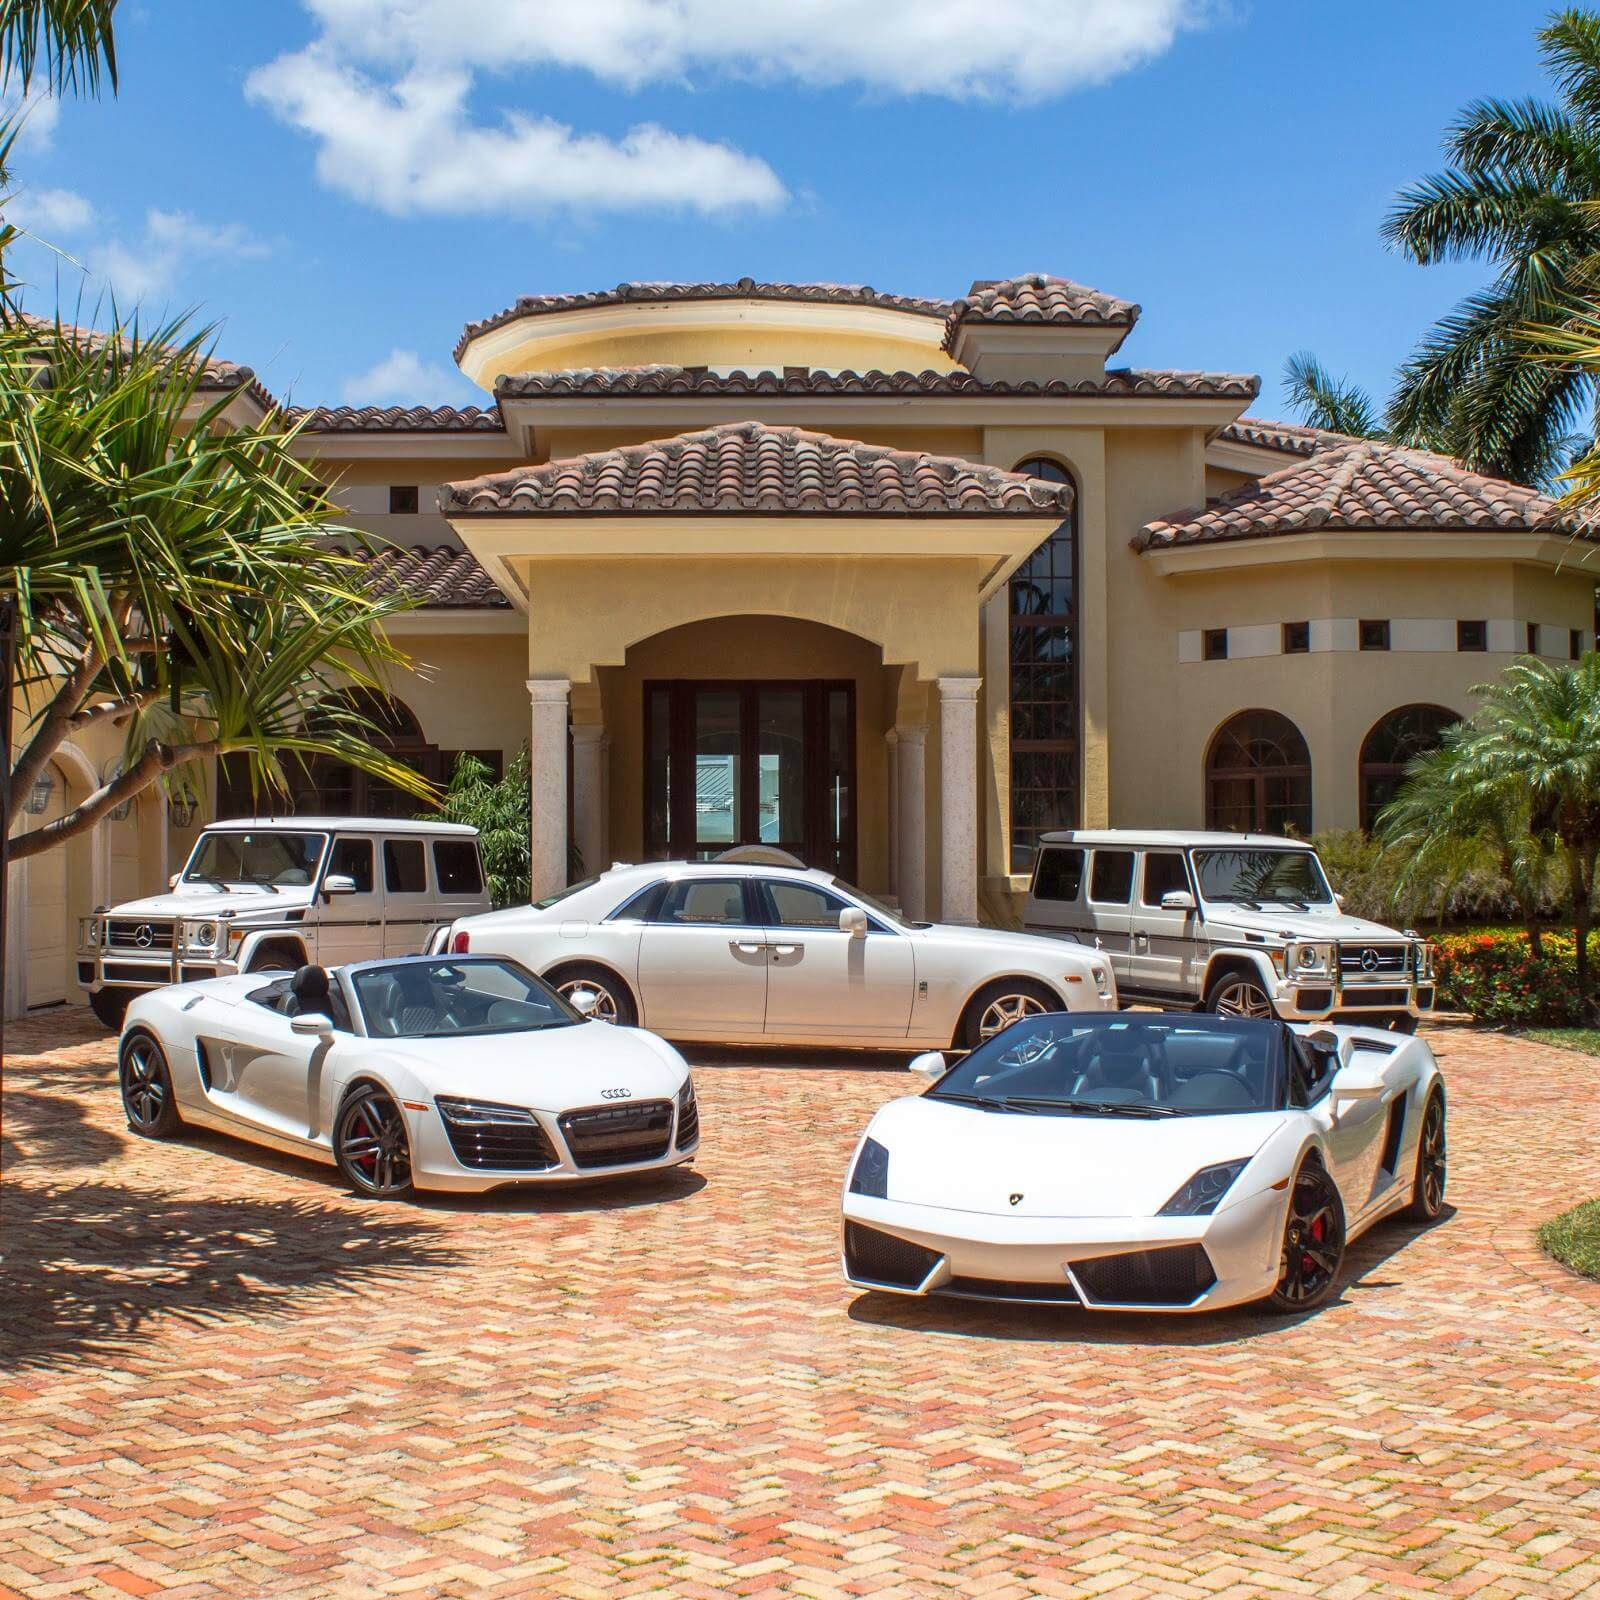 Luxury Homes In Florida: How To Market And Sell A Multi-Million Dollar Home In Any